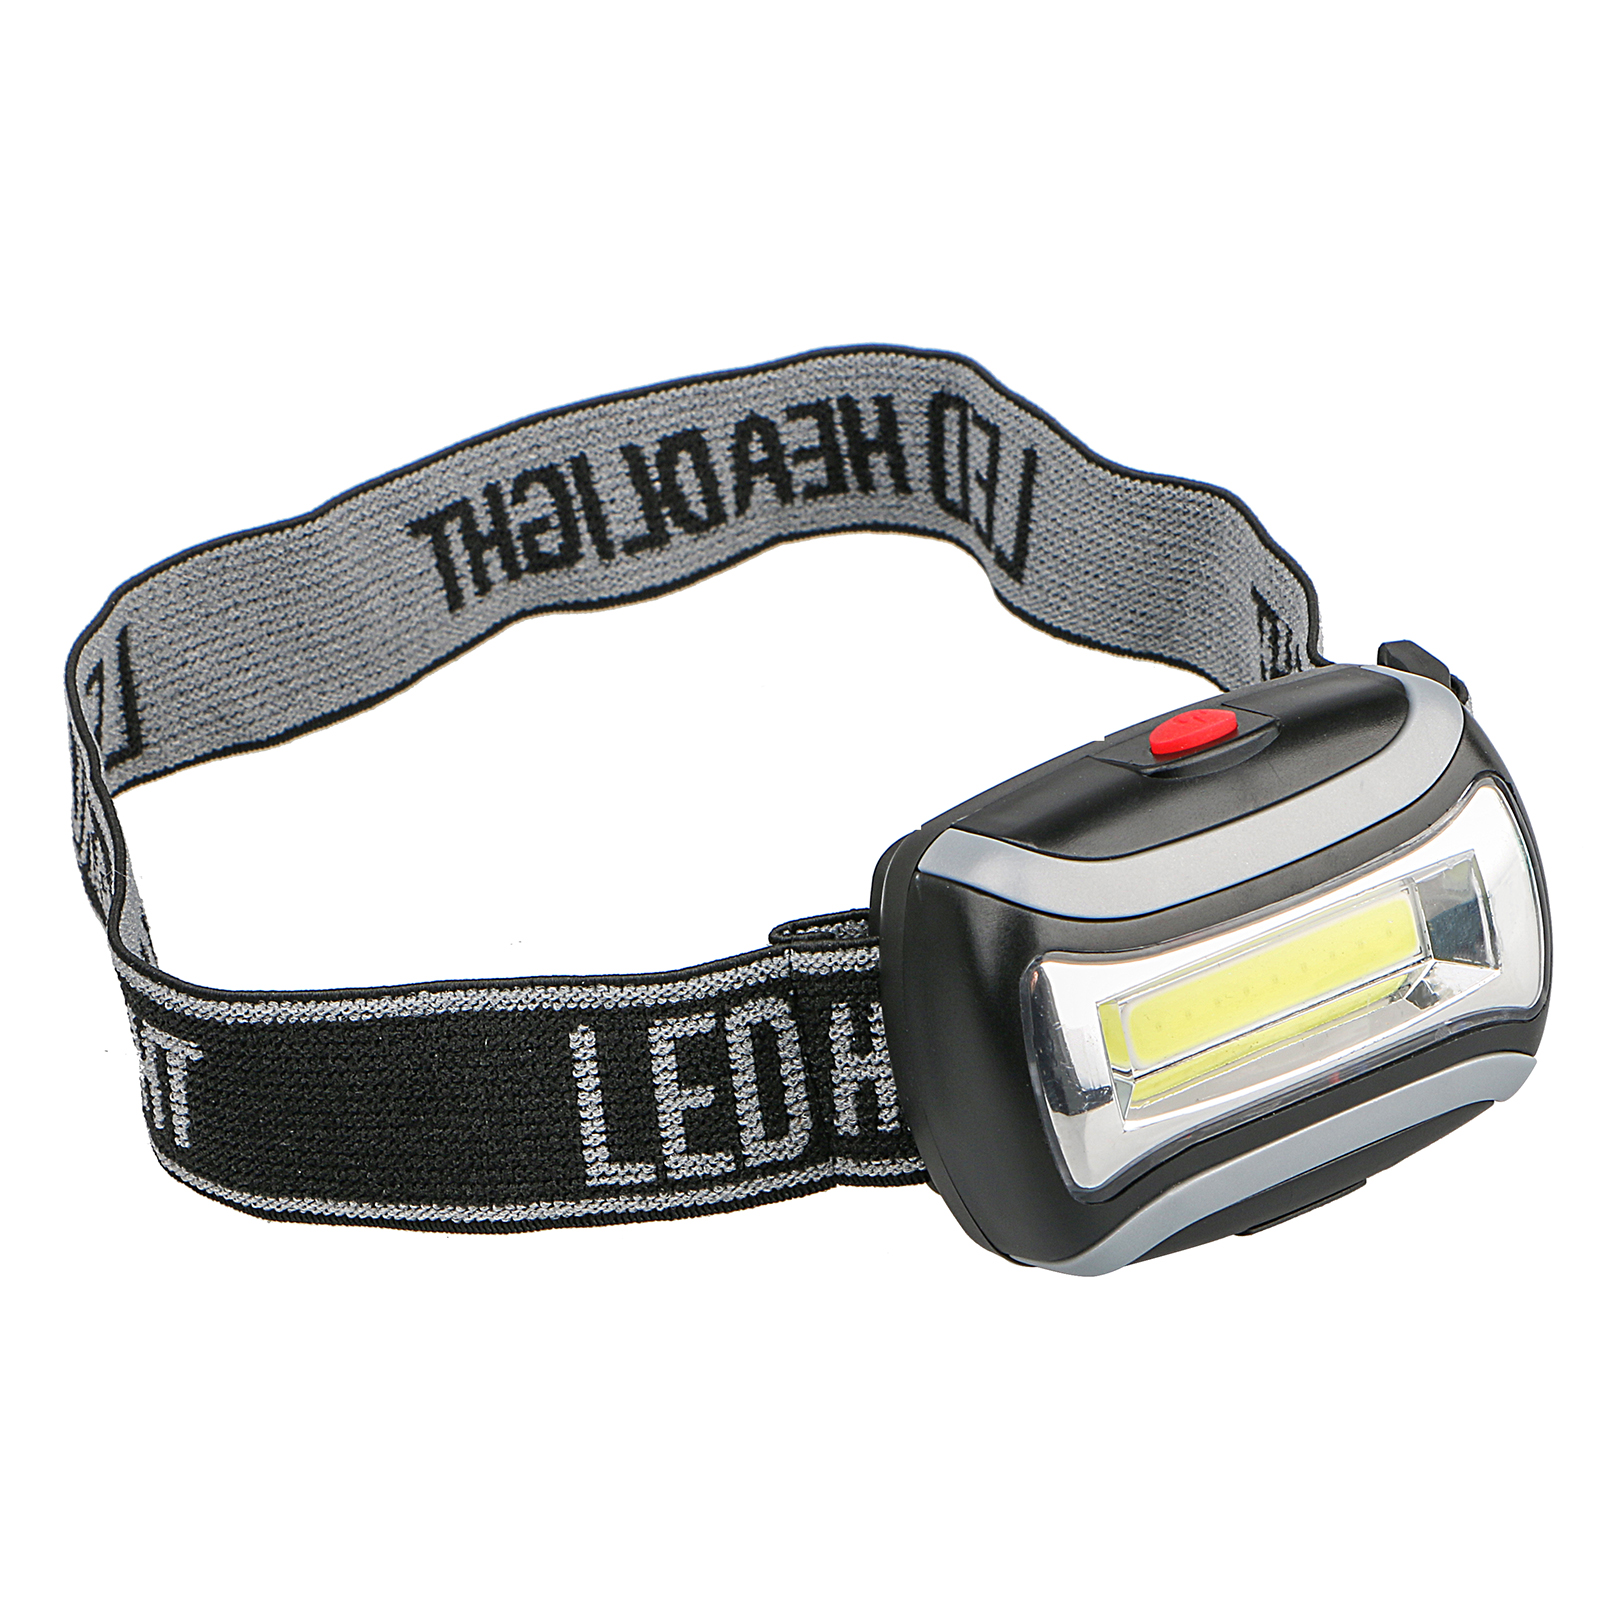 5W 800LM 3-Mode Battery Operated COB Head Light LED Headlamp Flashlight for Camping Night Fishing